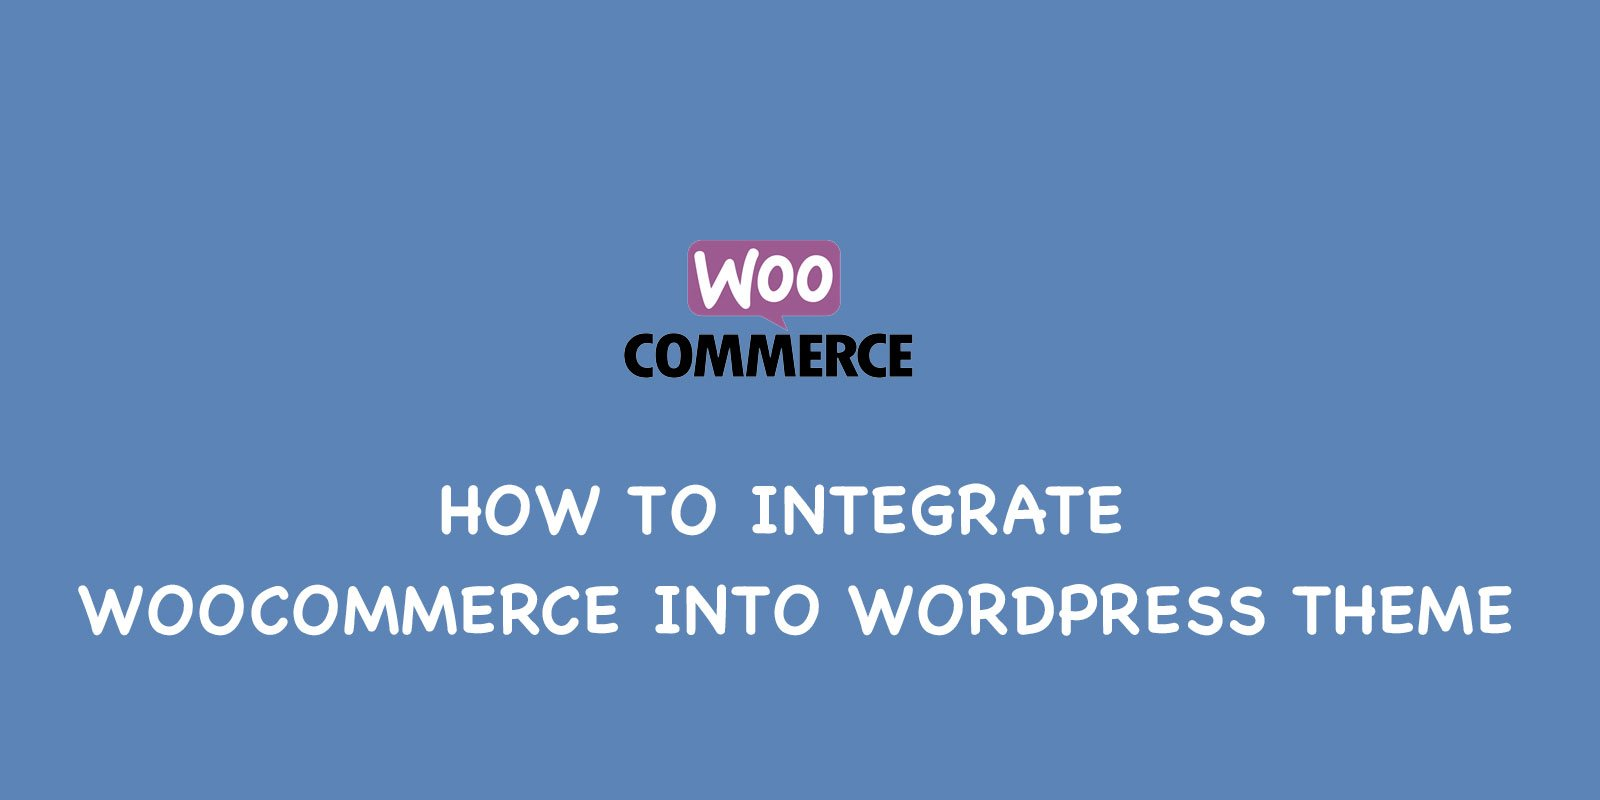 how to integrate woocommerce into wordpress theme